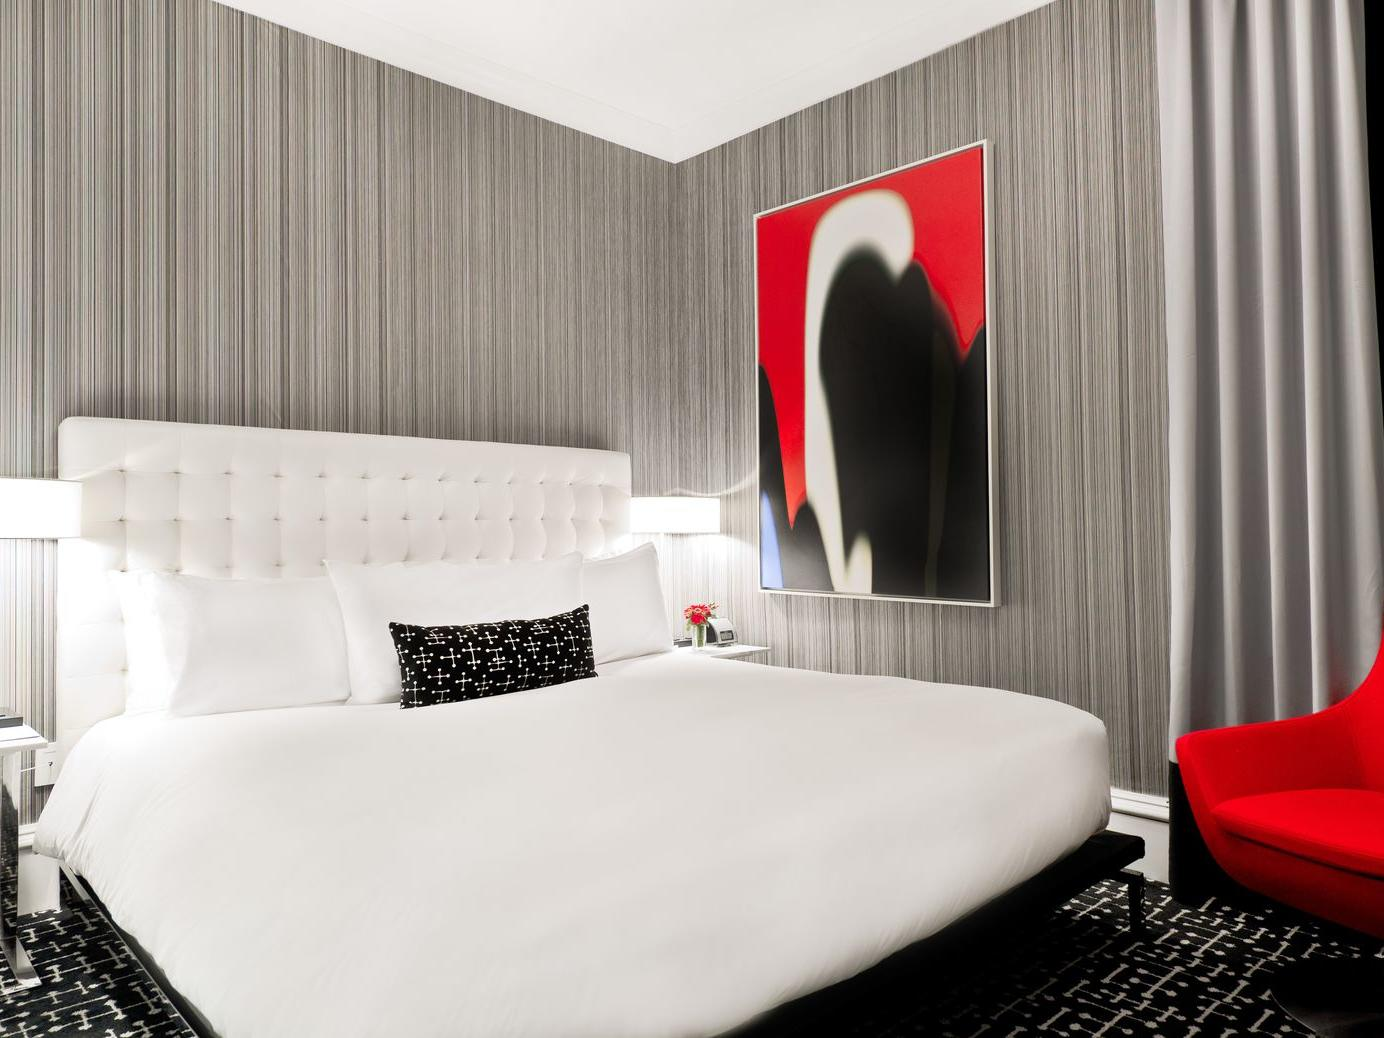 large bed next to a black and red painting